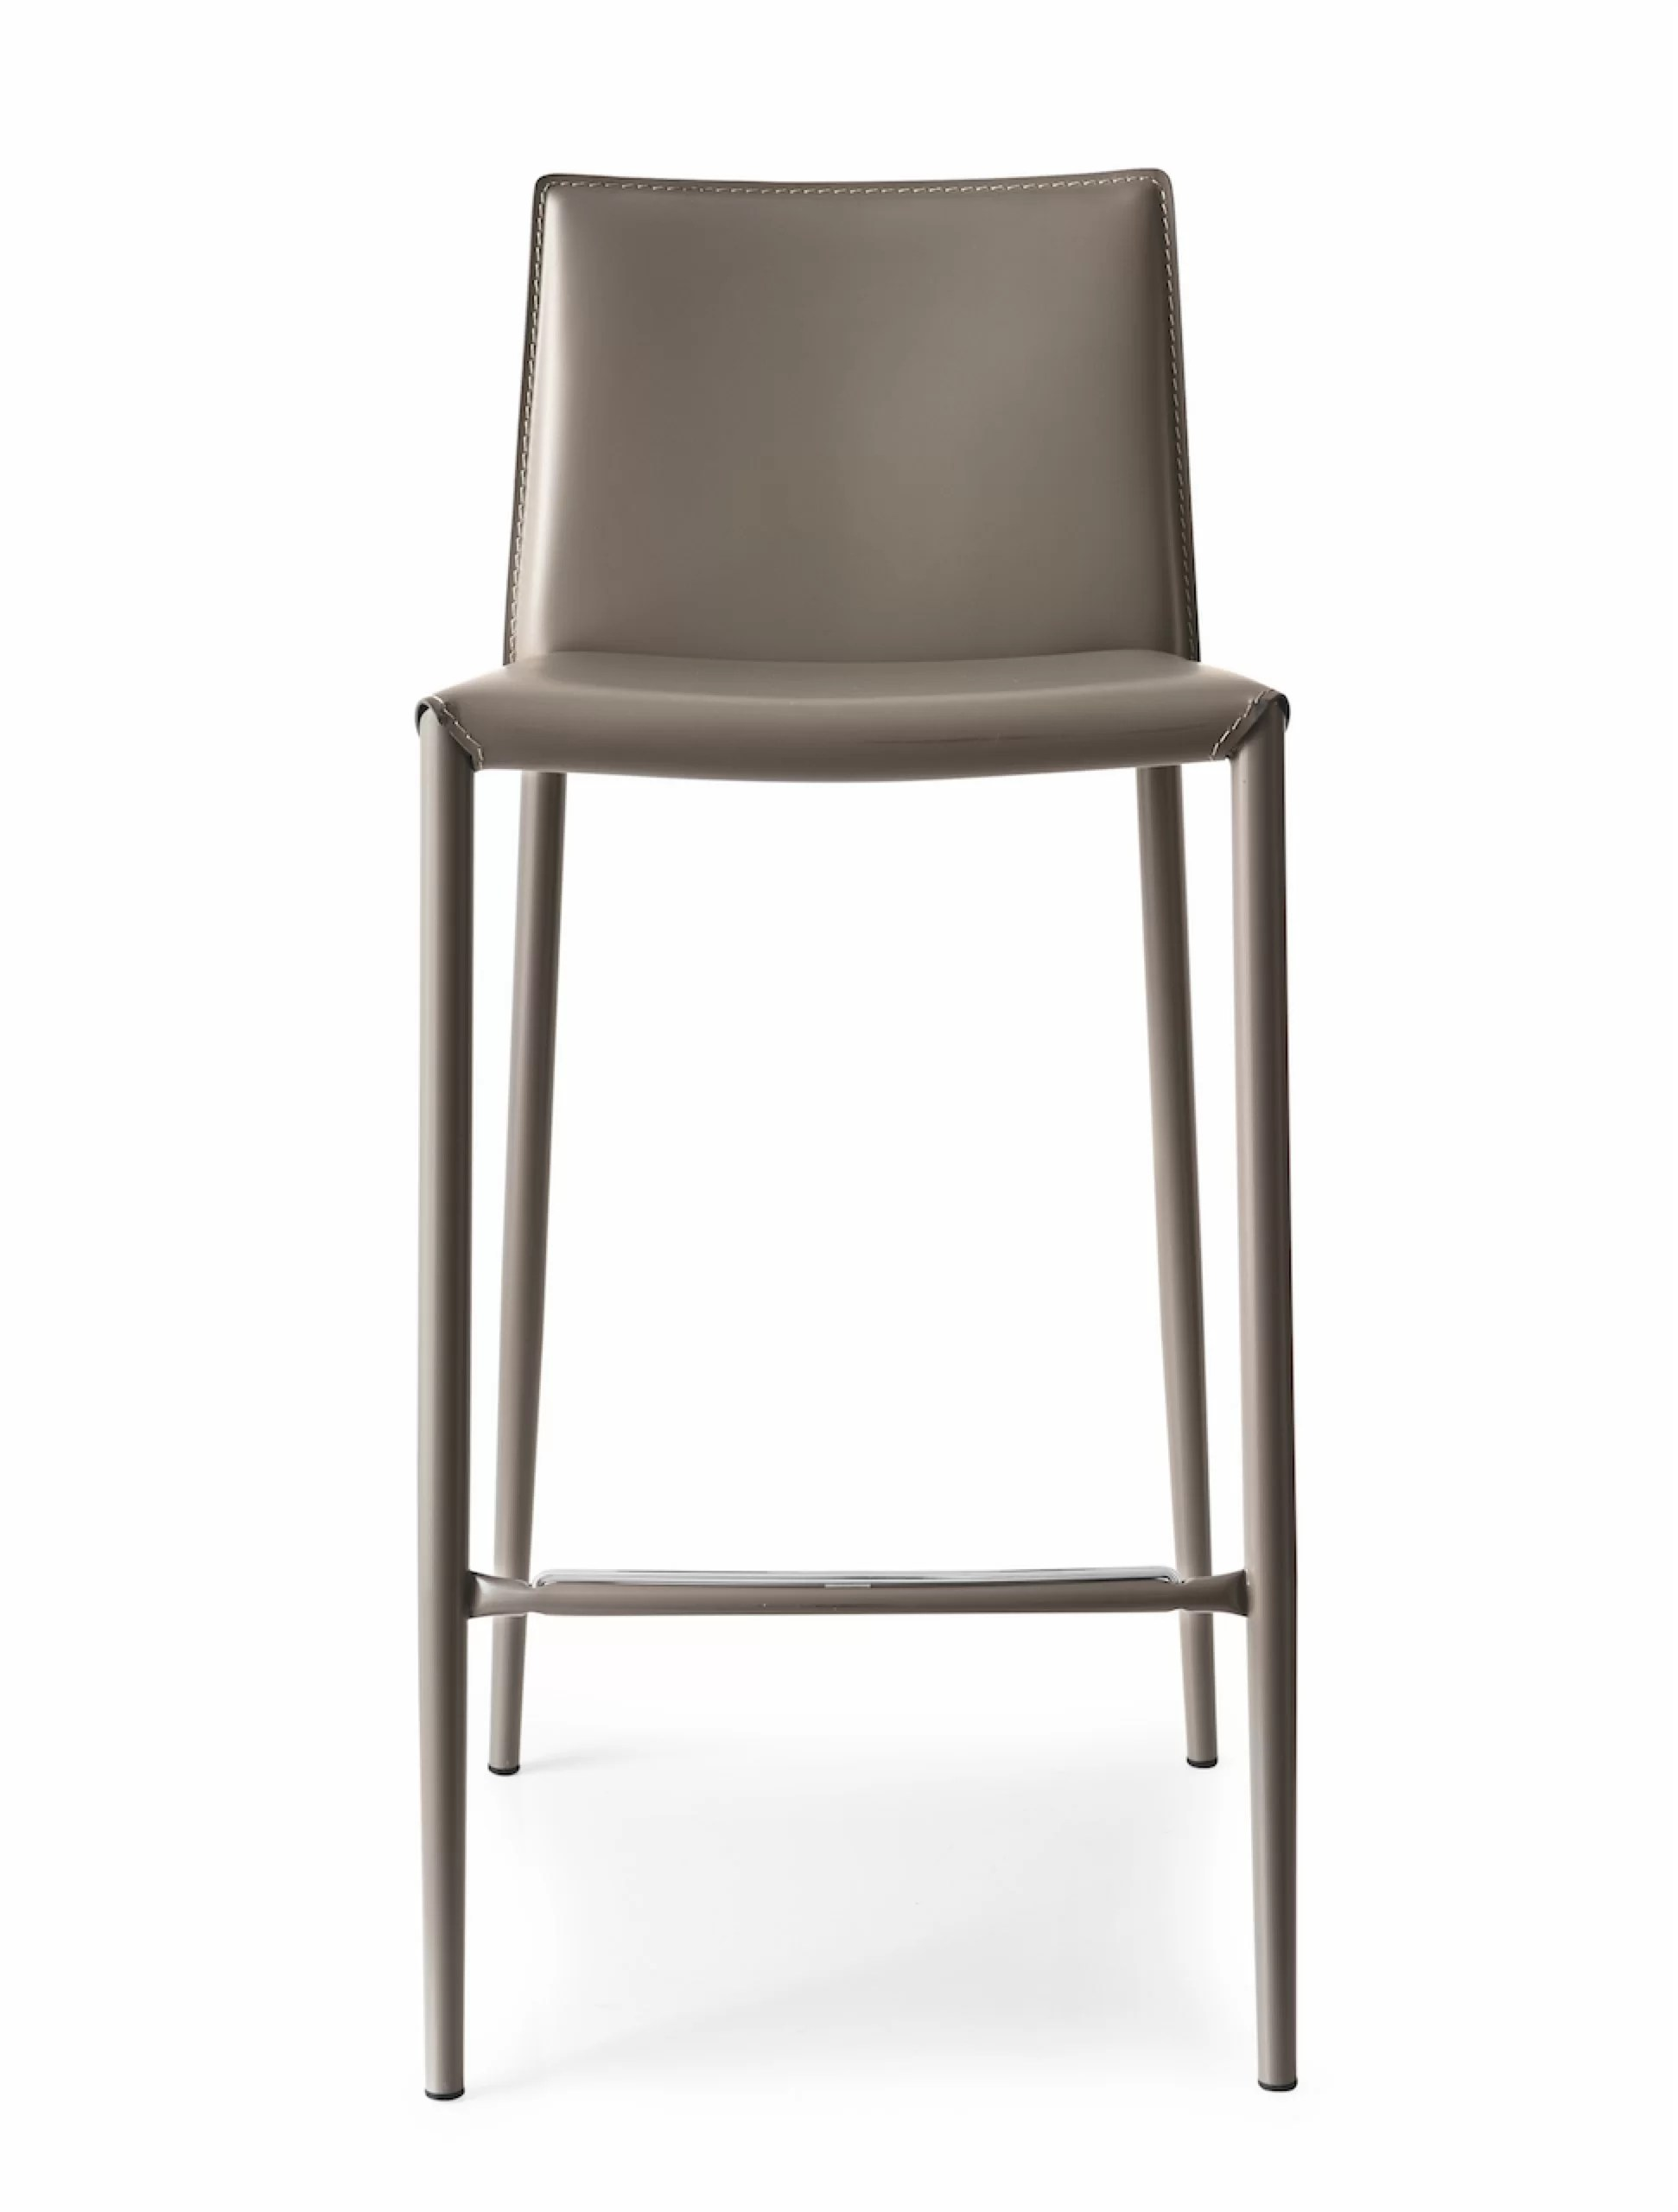 storage box chair philippines and half slipcover calligaris allmodern our best sellers